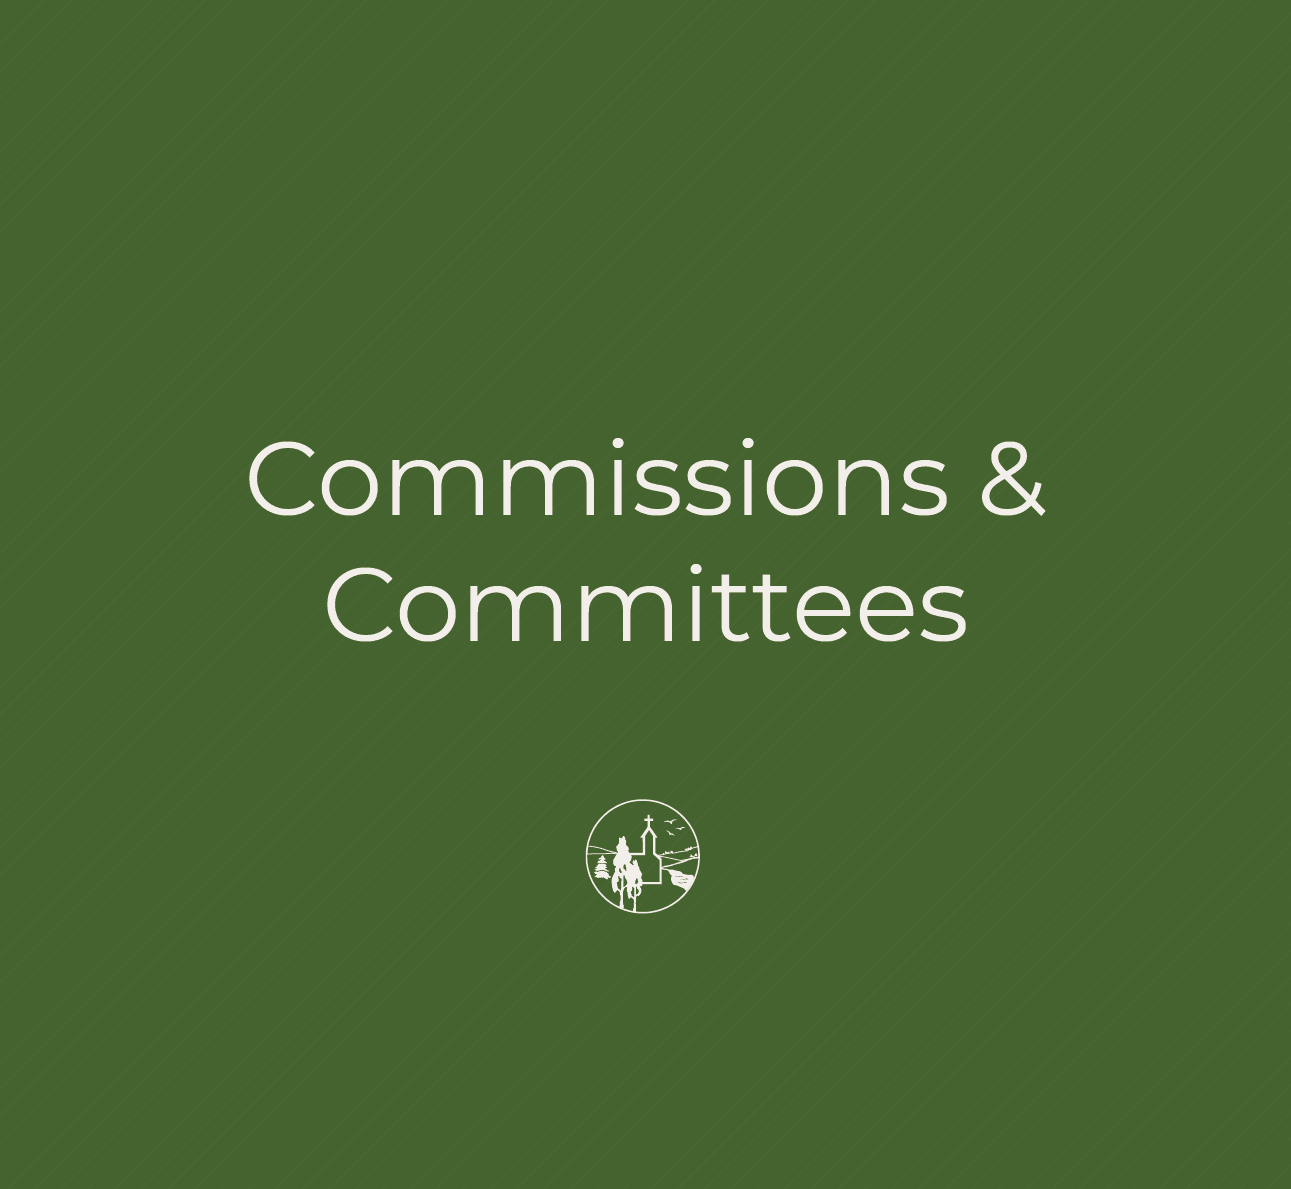 Commissions & Committees in text with City of Victoria logo.